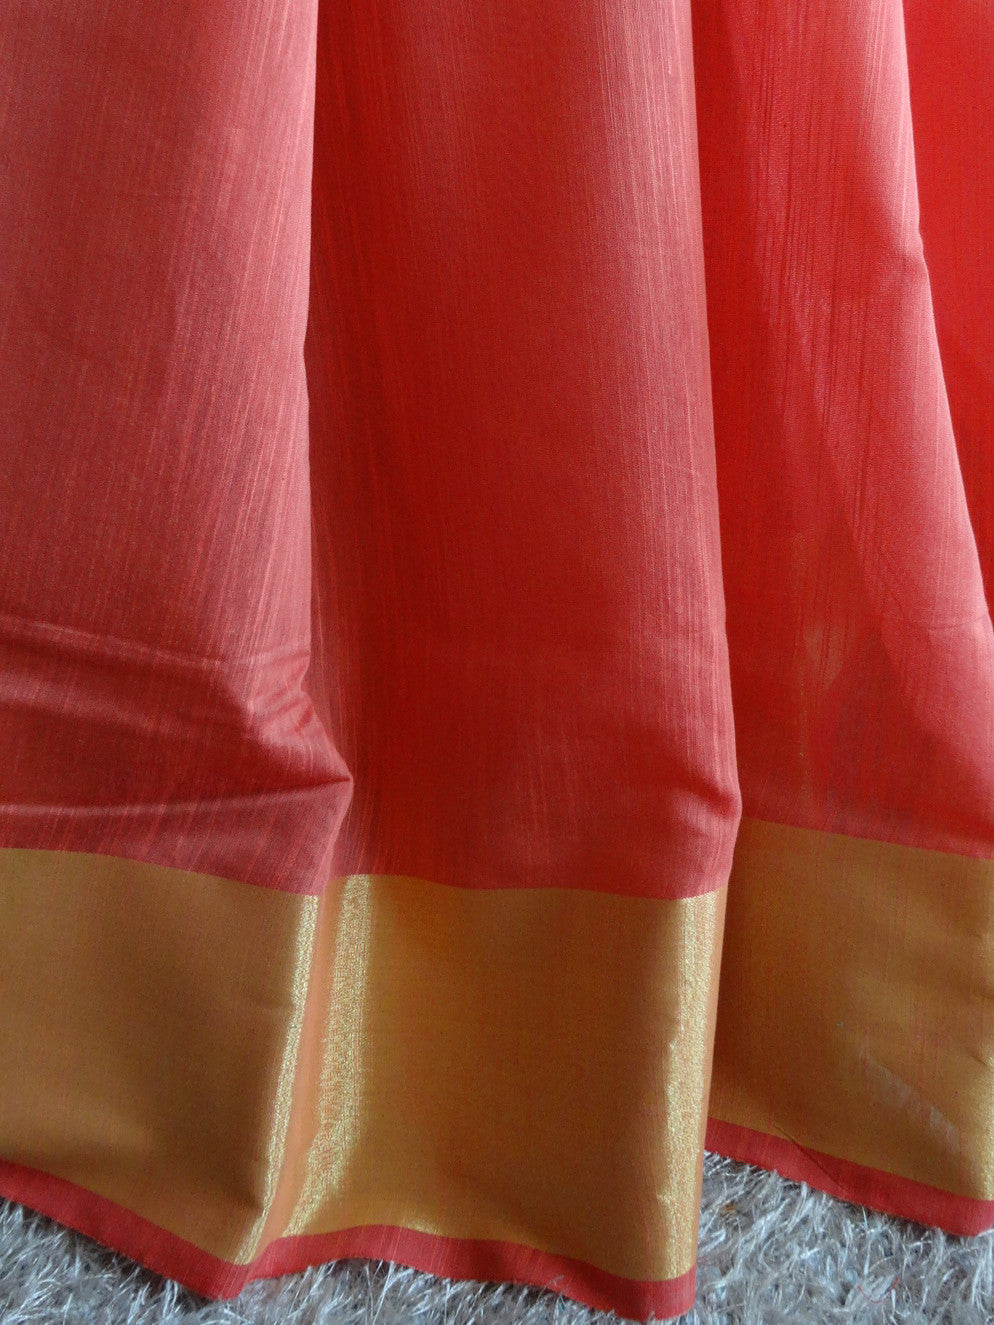 Banarasee/Banarasi Cotton Blend Sari With Zari Border-Peach